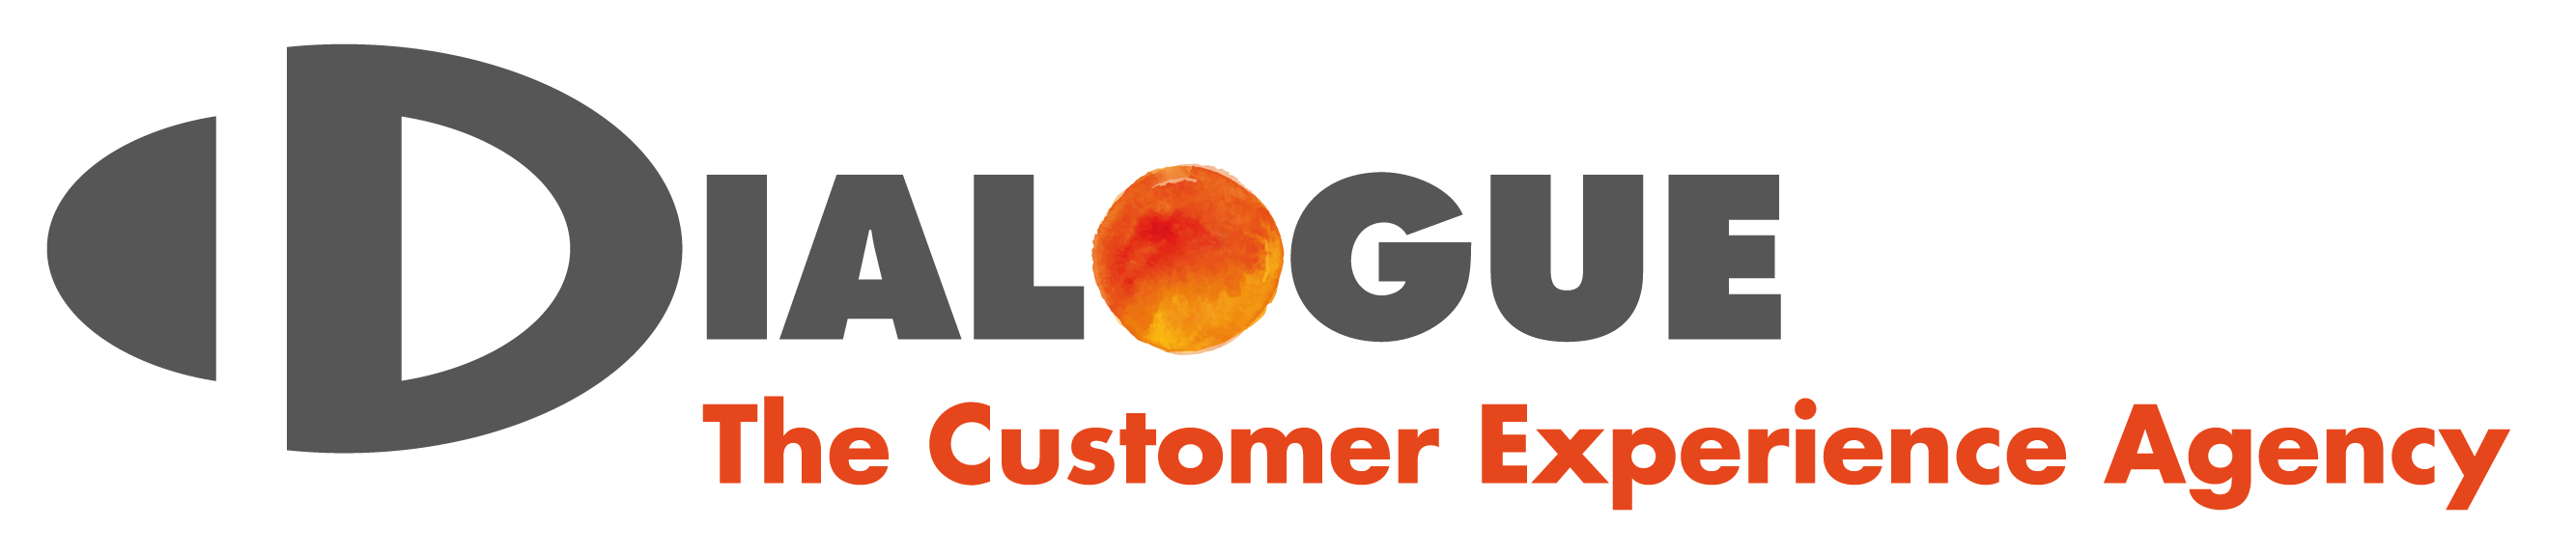 Dialogue Cust Ex ORANGE dot_Big Strapline-01